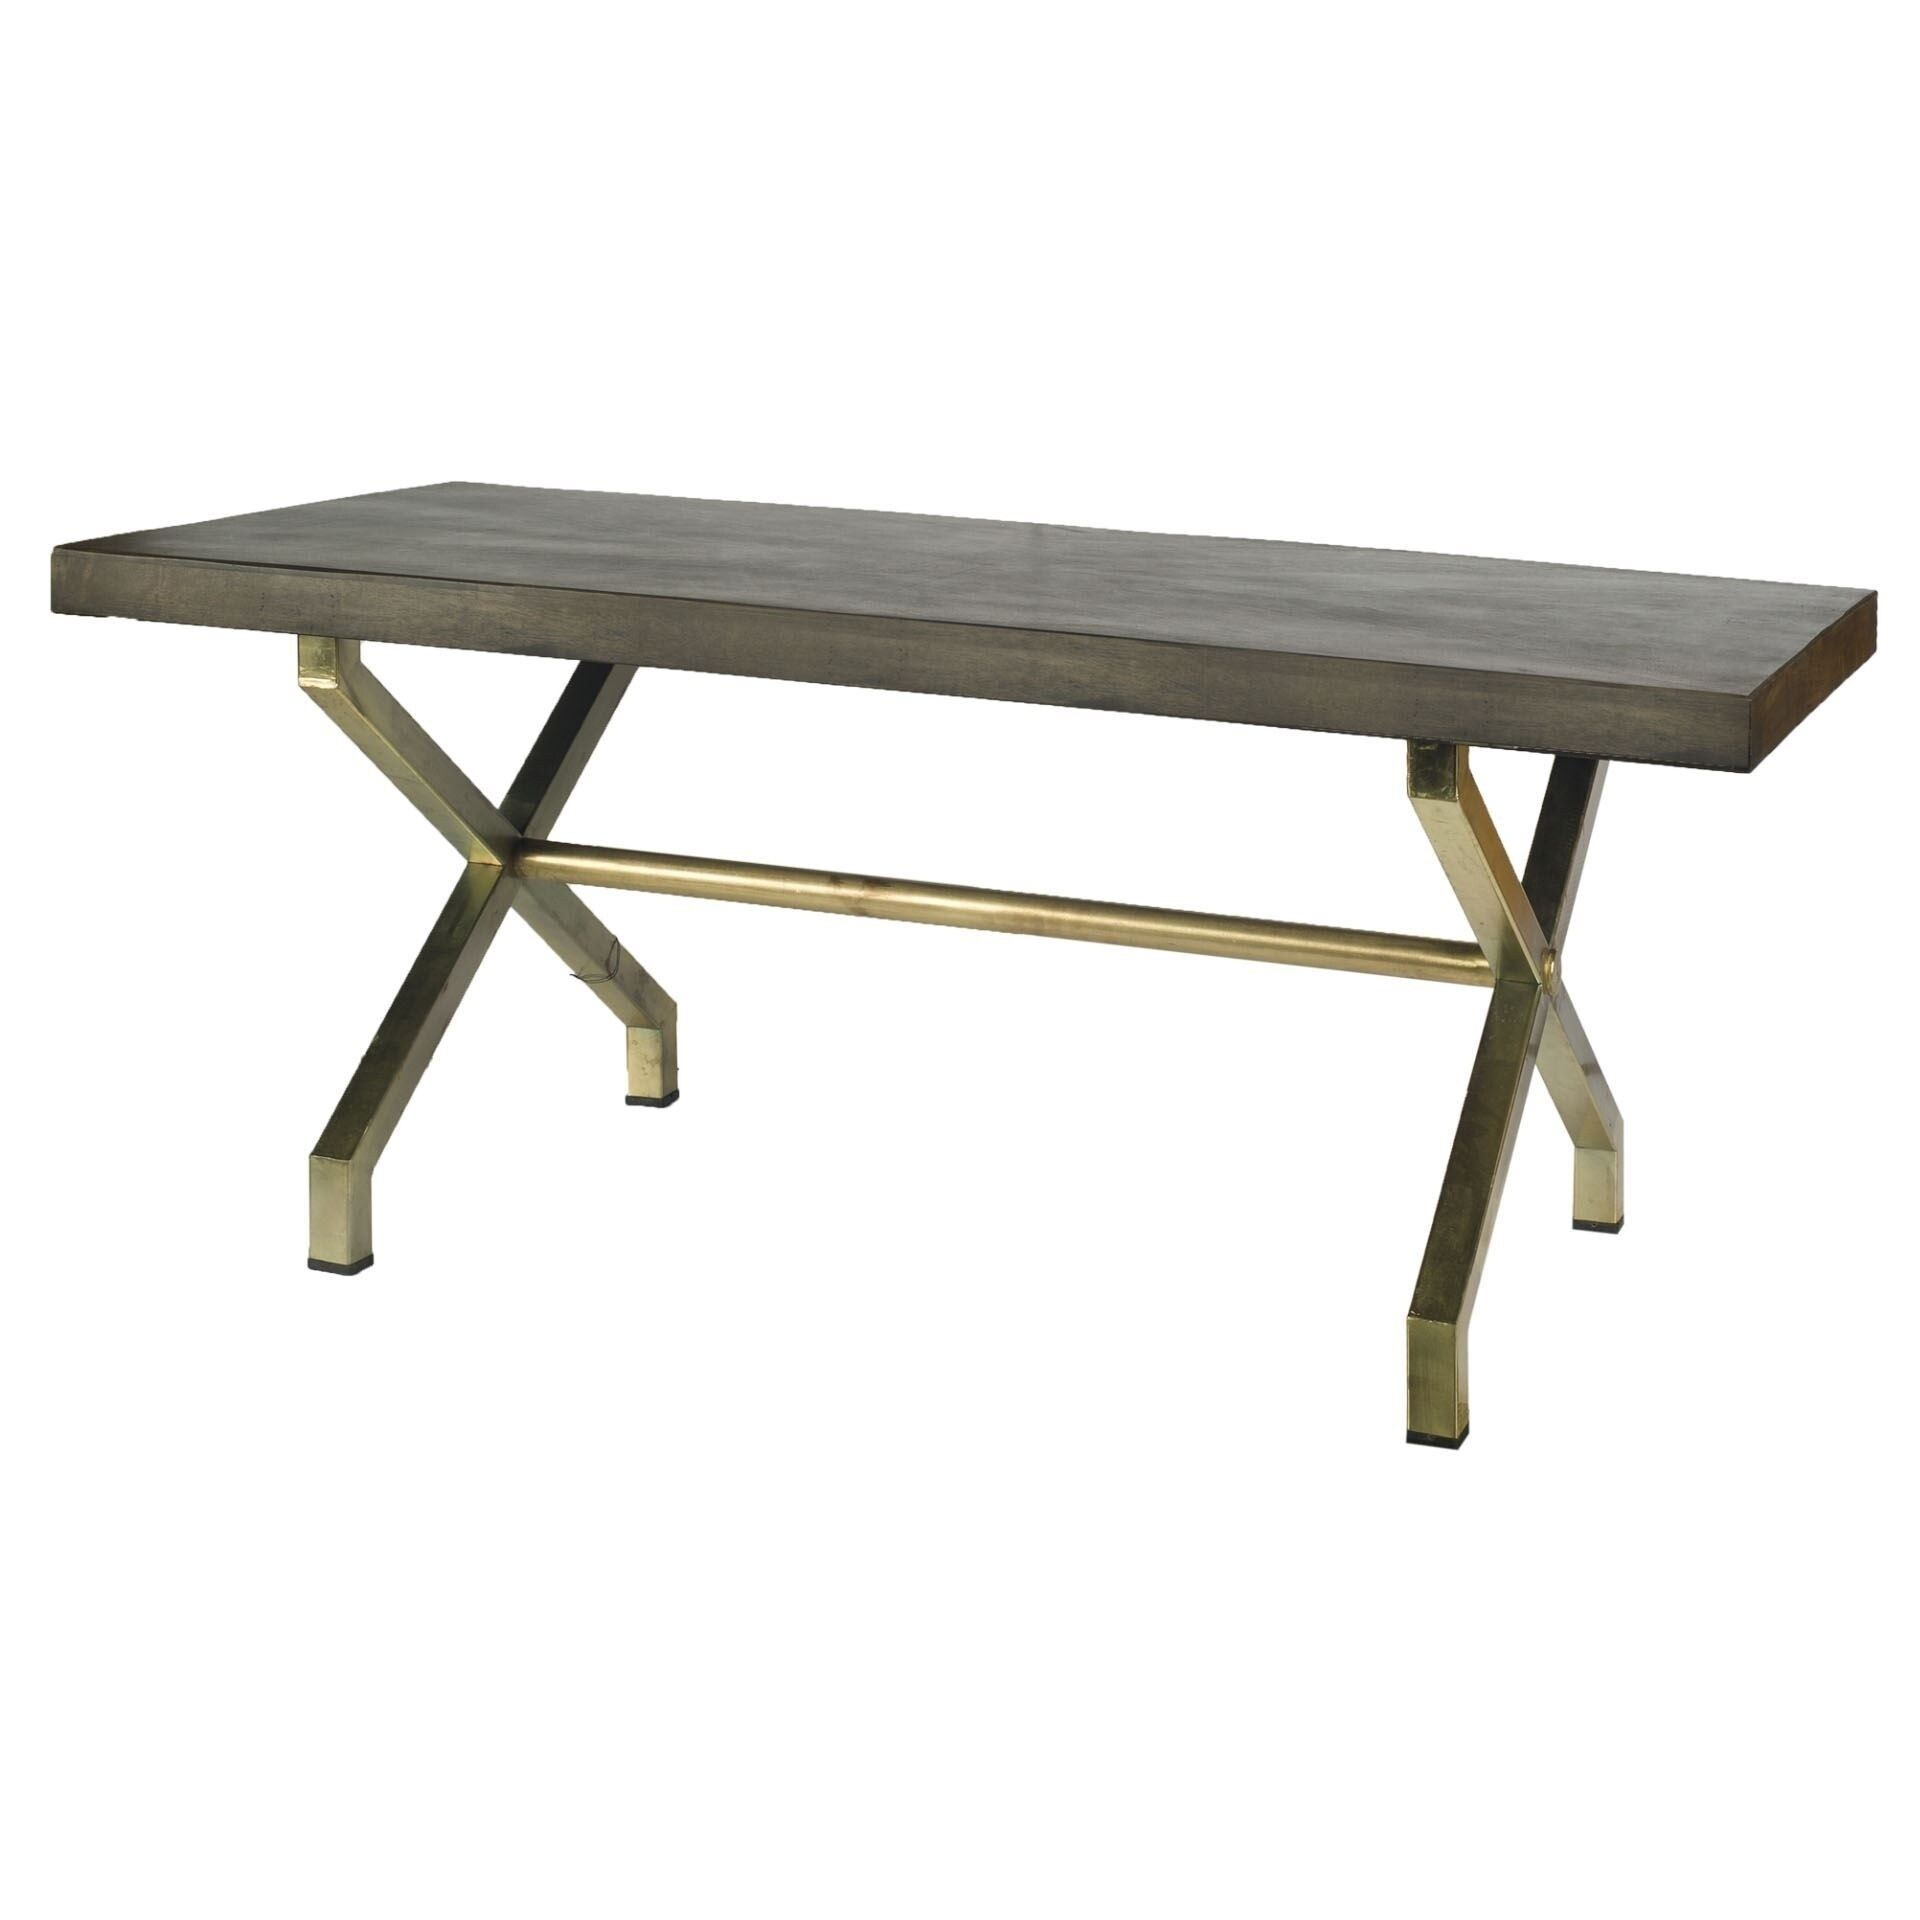 Mercana Arrow I Dark Walnut/Antiqued Brass Wood/Iron With Most Recent Mccrimmon 36'' Mango Solid Wood Dining Tables (View 15 of 15)